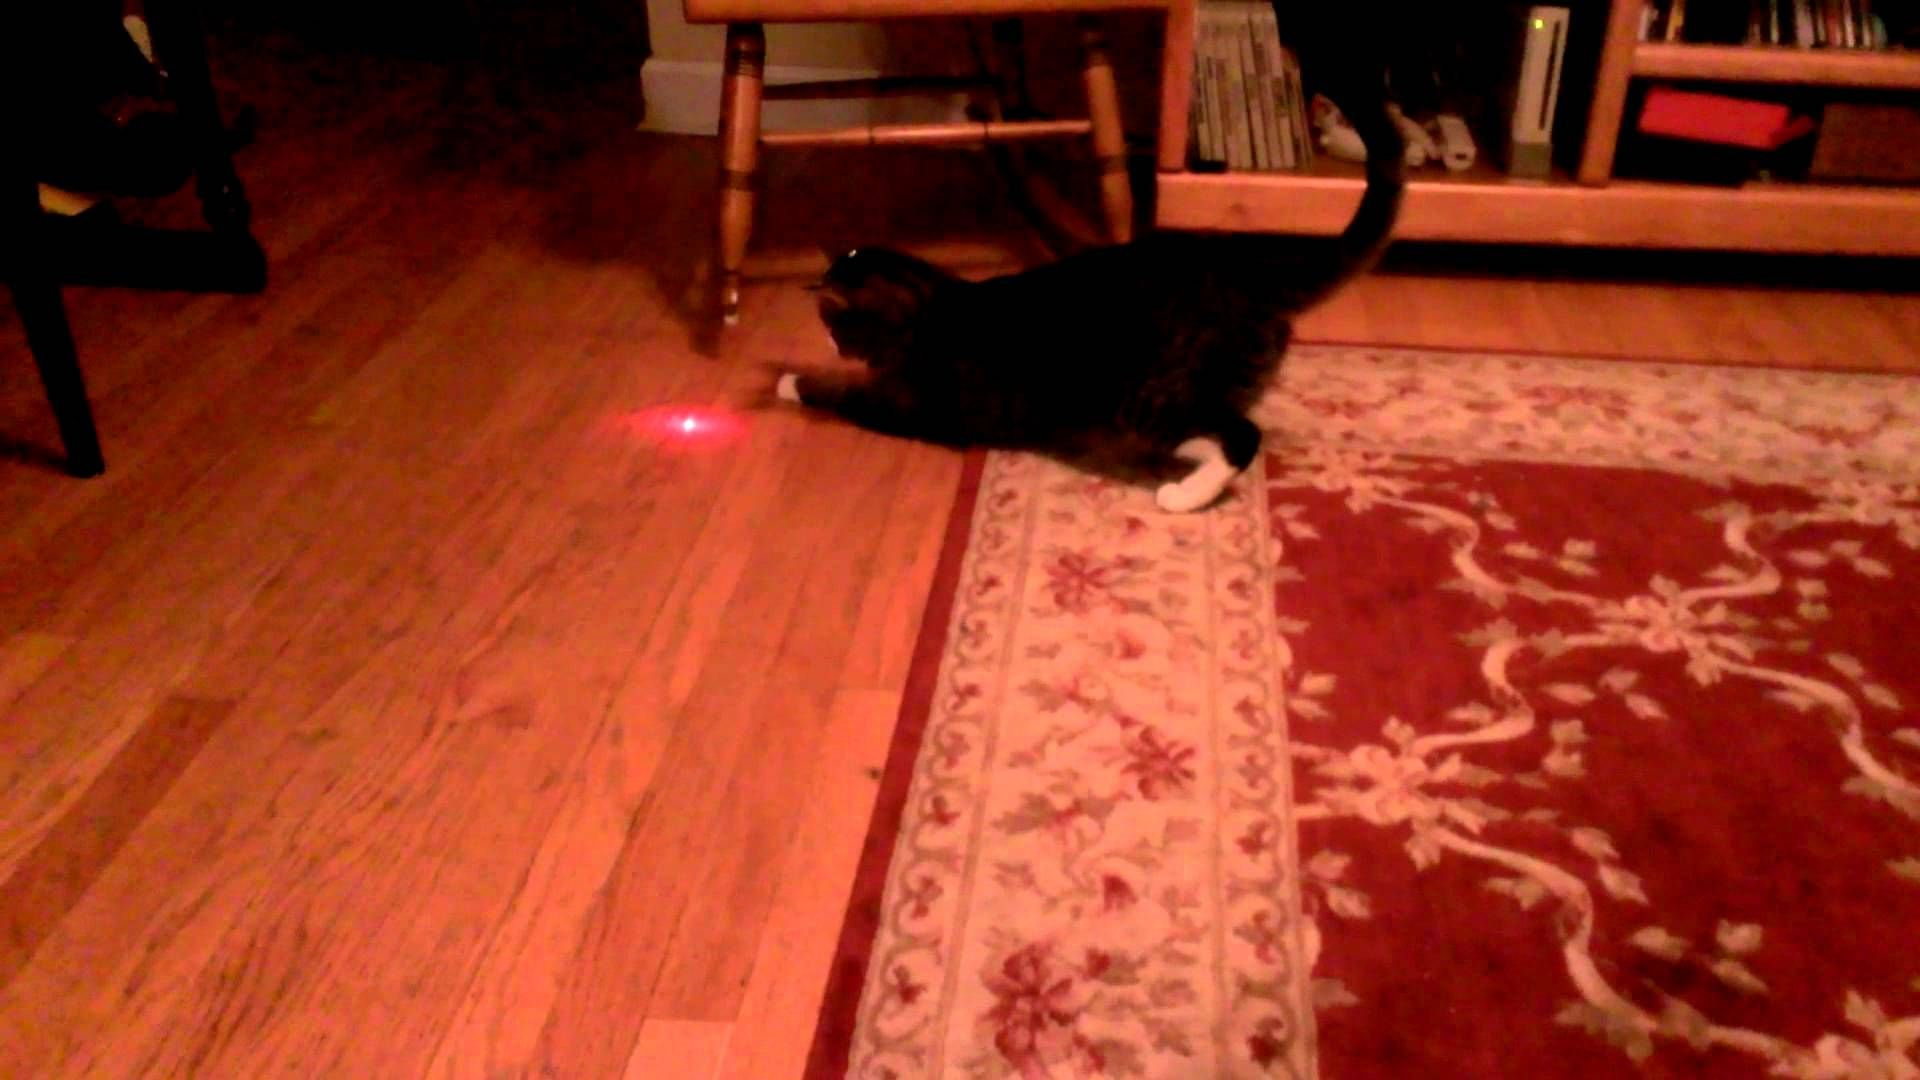 Flustered Cat With A Laser Pointer Taped To His Head Tries To Capture The Constantly Moving Dot Laser Pointer Cats Funny Animal Videos